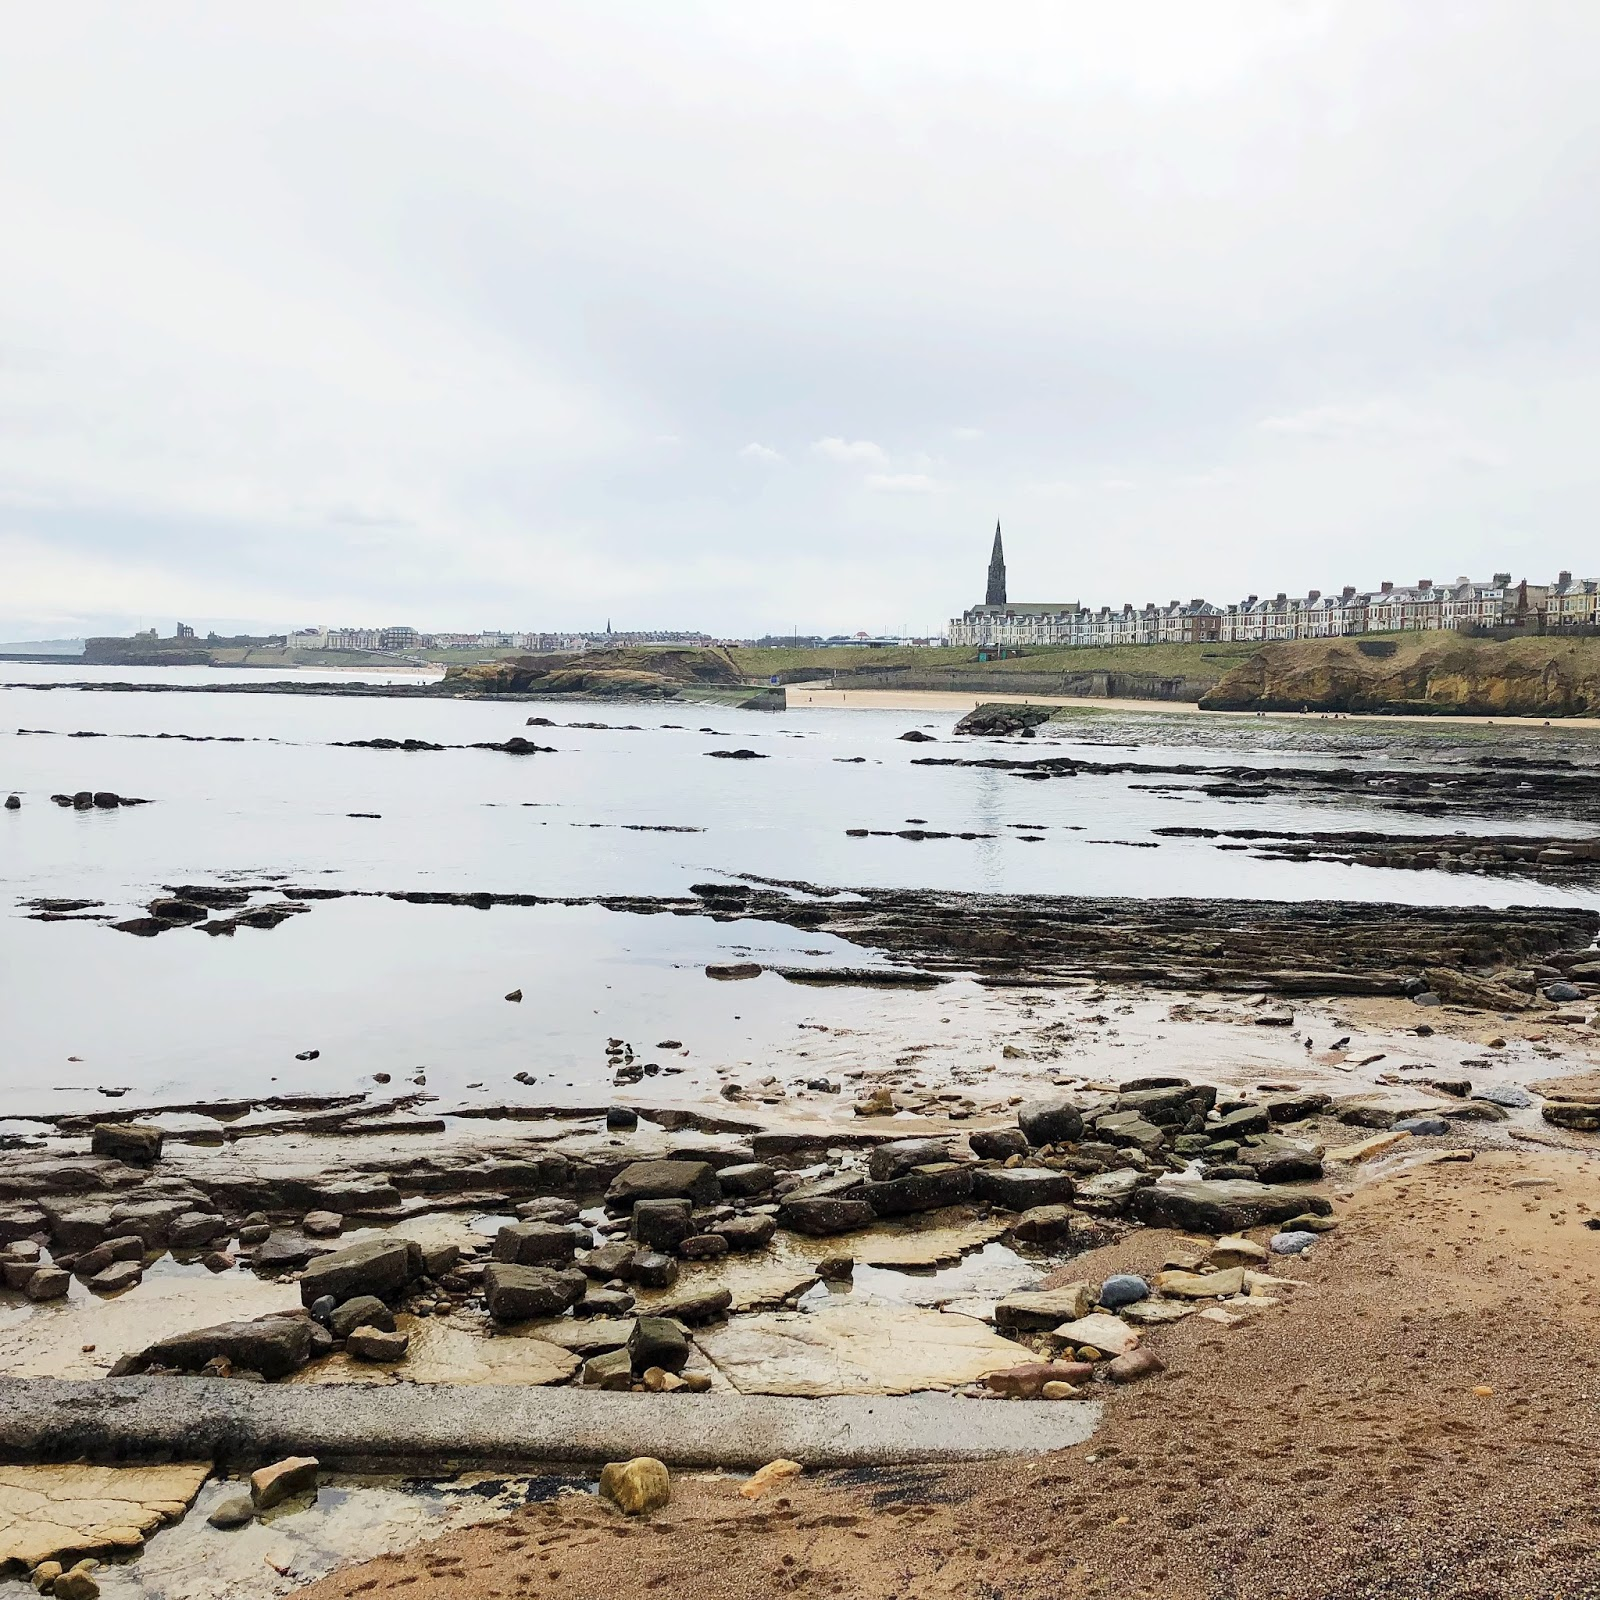 Whitley Bay to Tynemouth